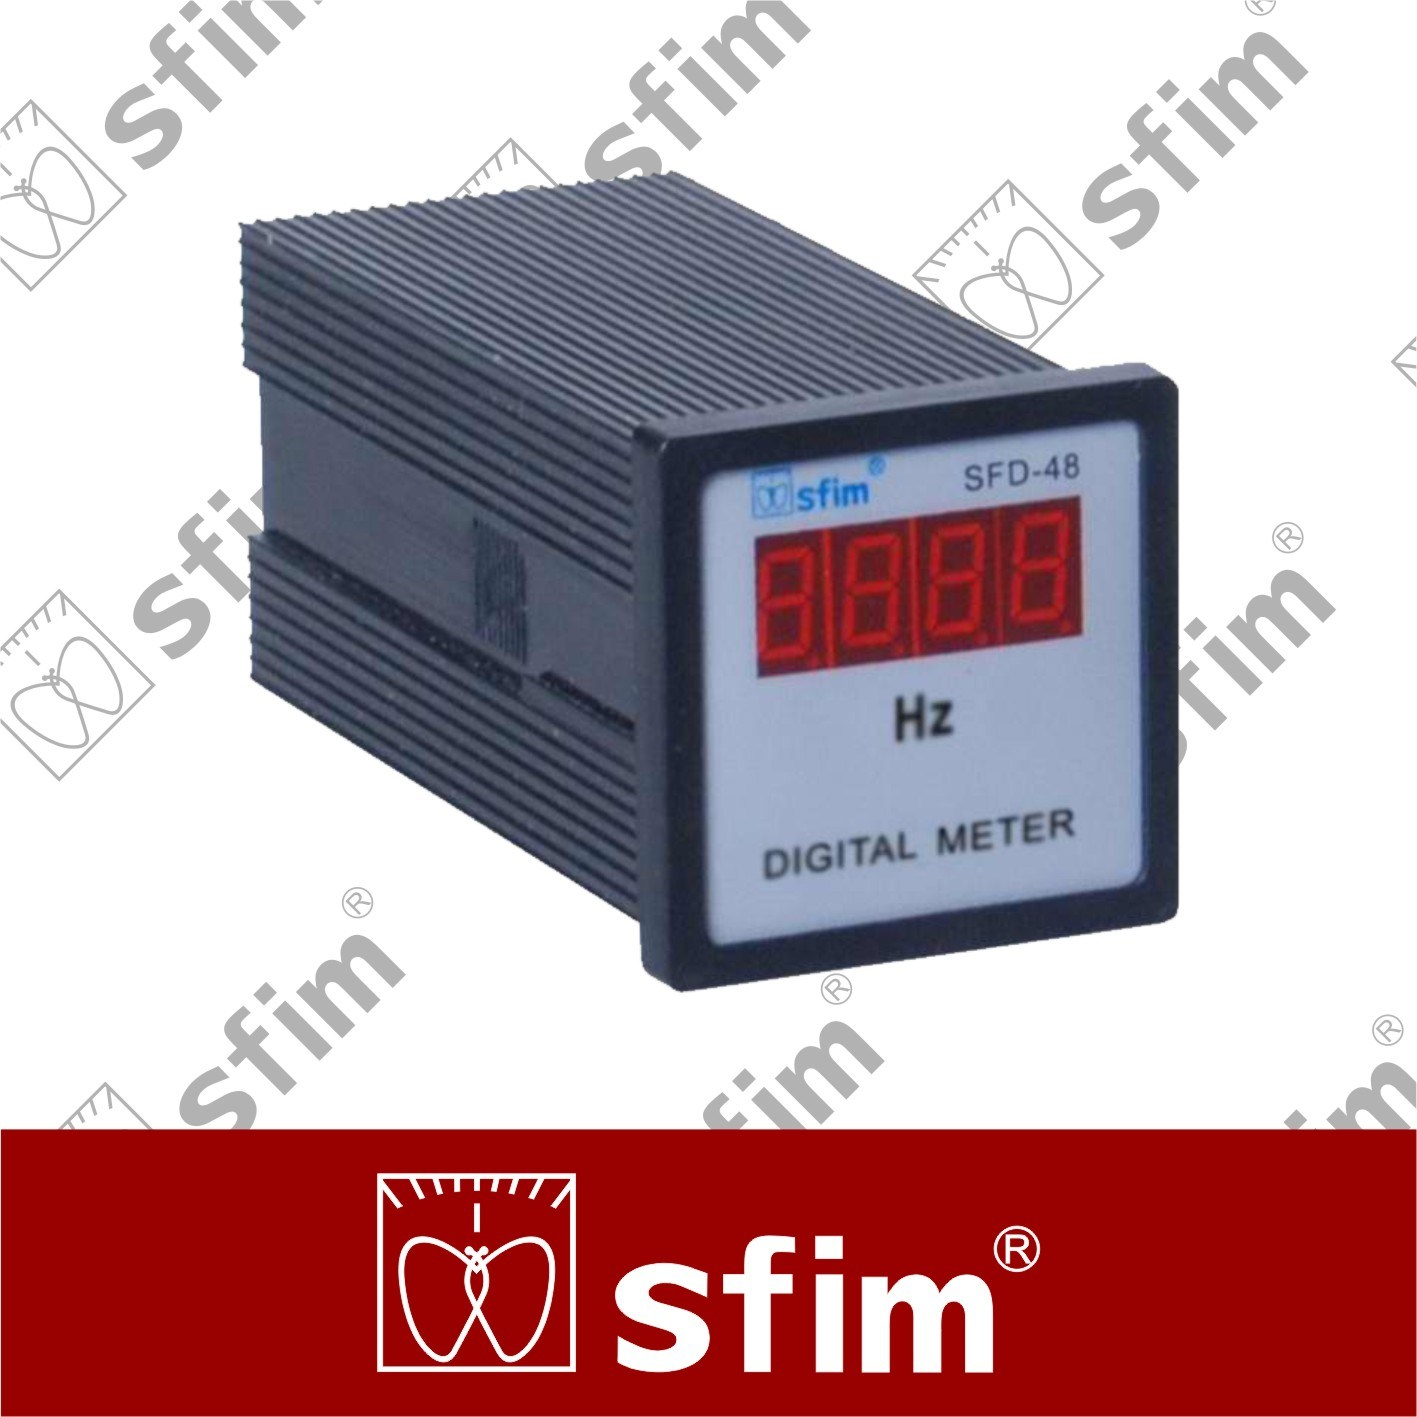 Digital Frequency Meter : China sfd series digital frequency meter photos pictures